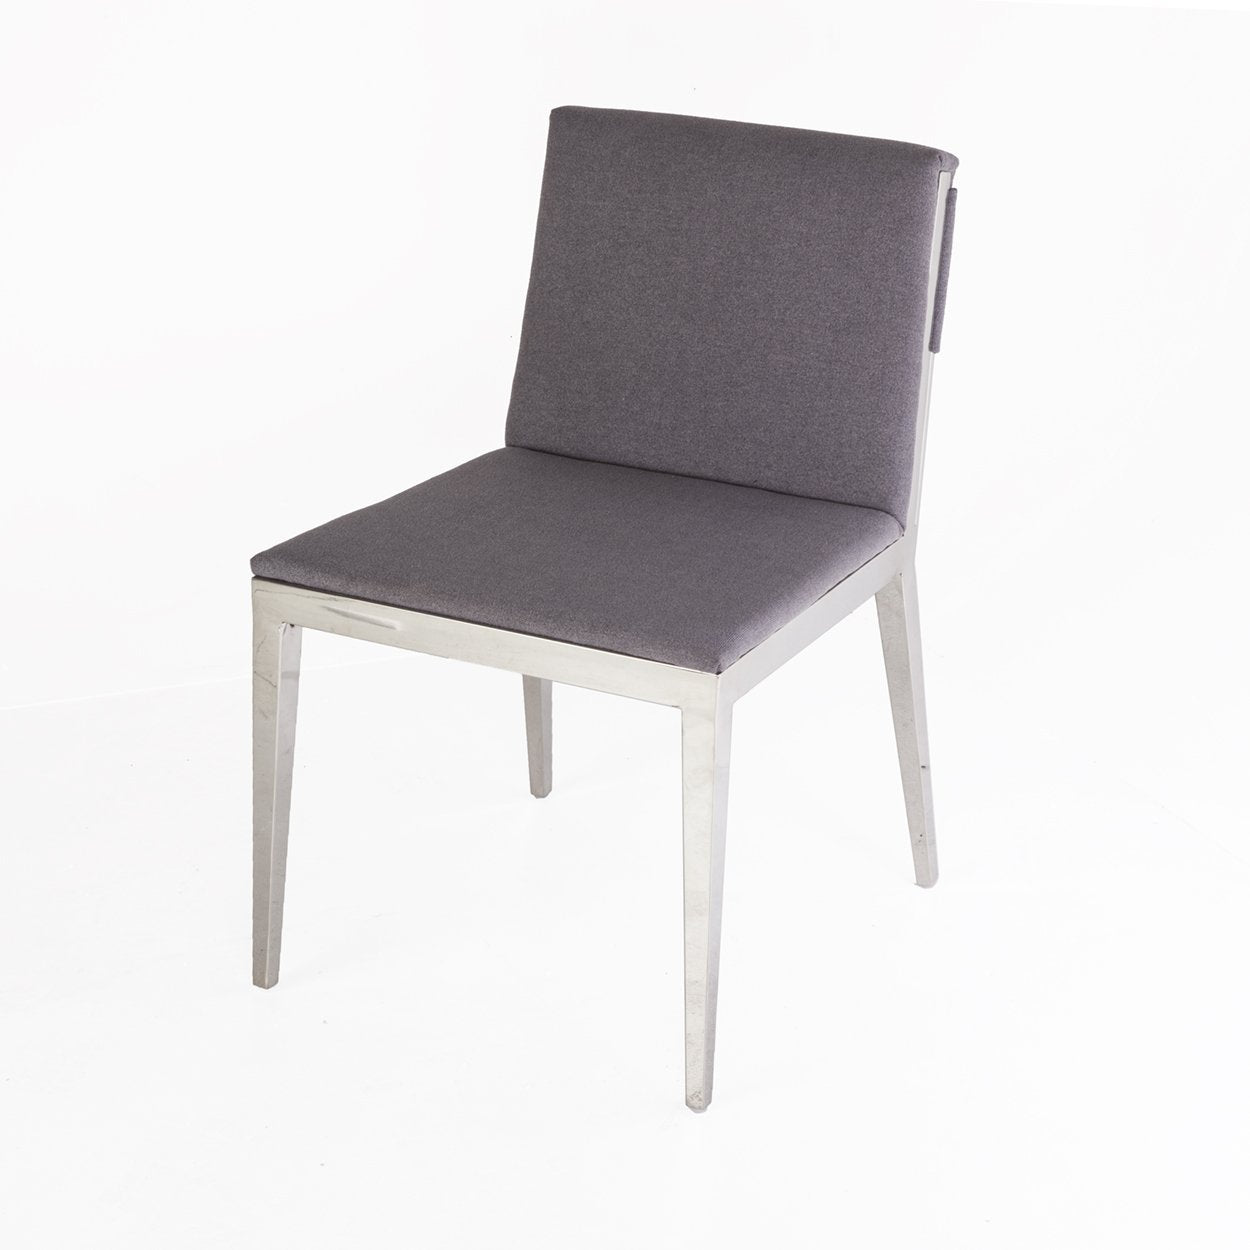 [FV370GREY] Elda Side Chair sale